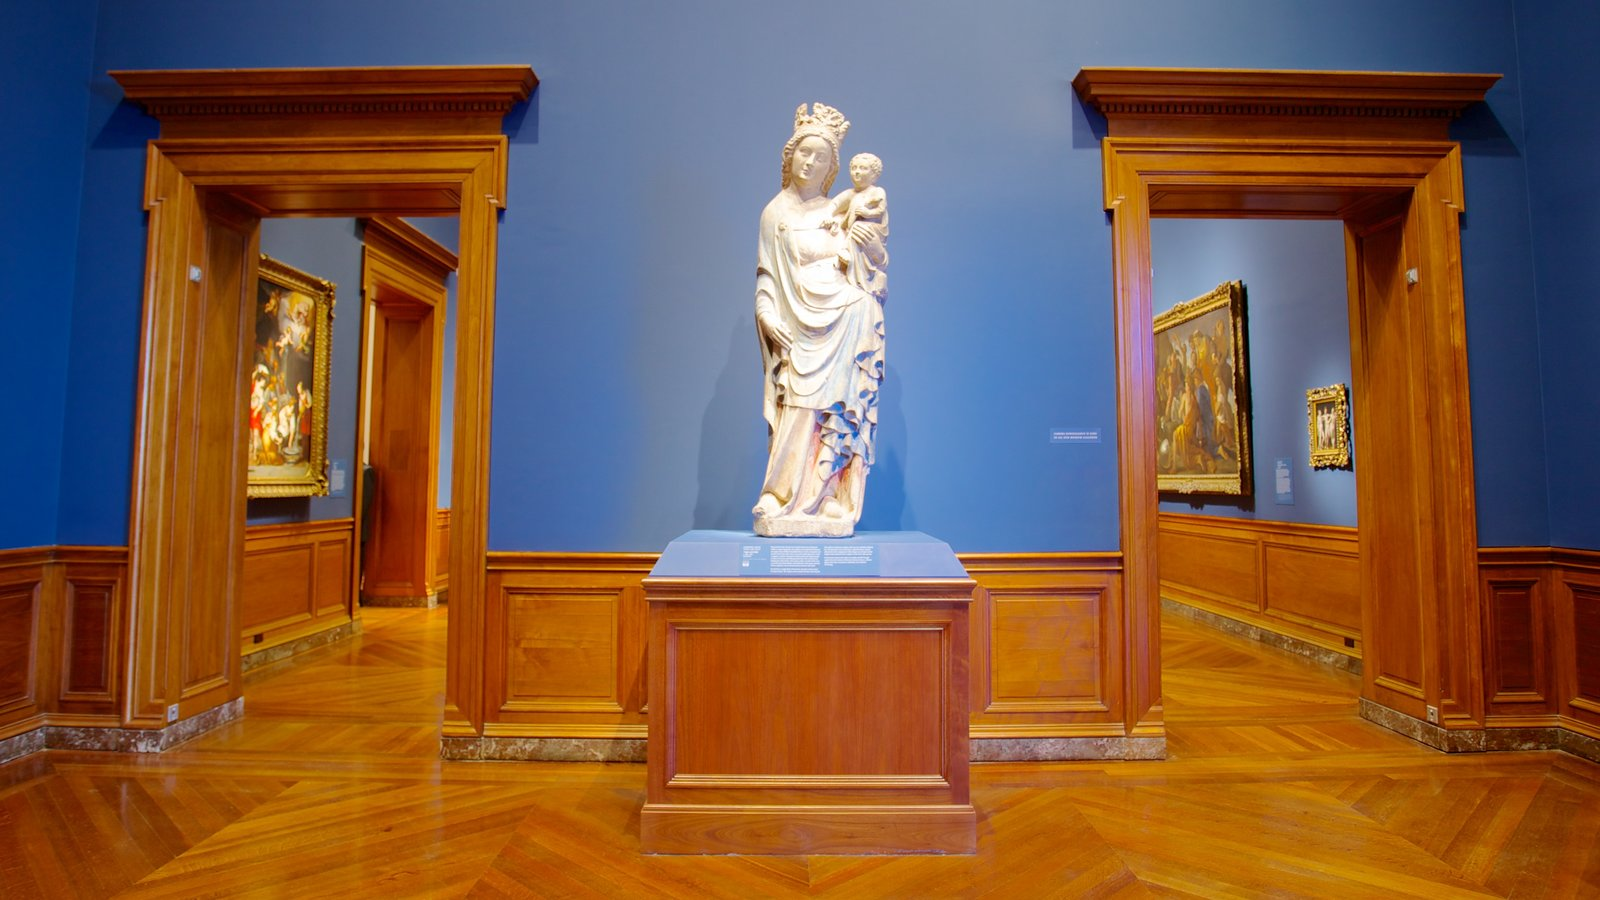 Baltimore Museum of Art featuring interior views, a statue or sculpture and art